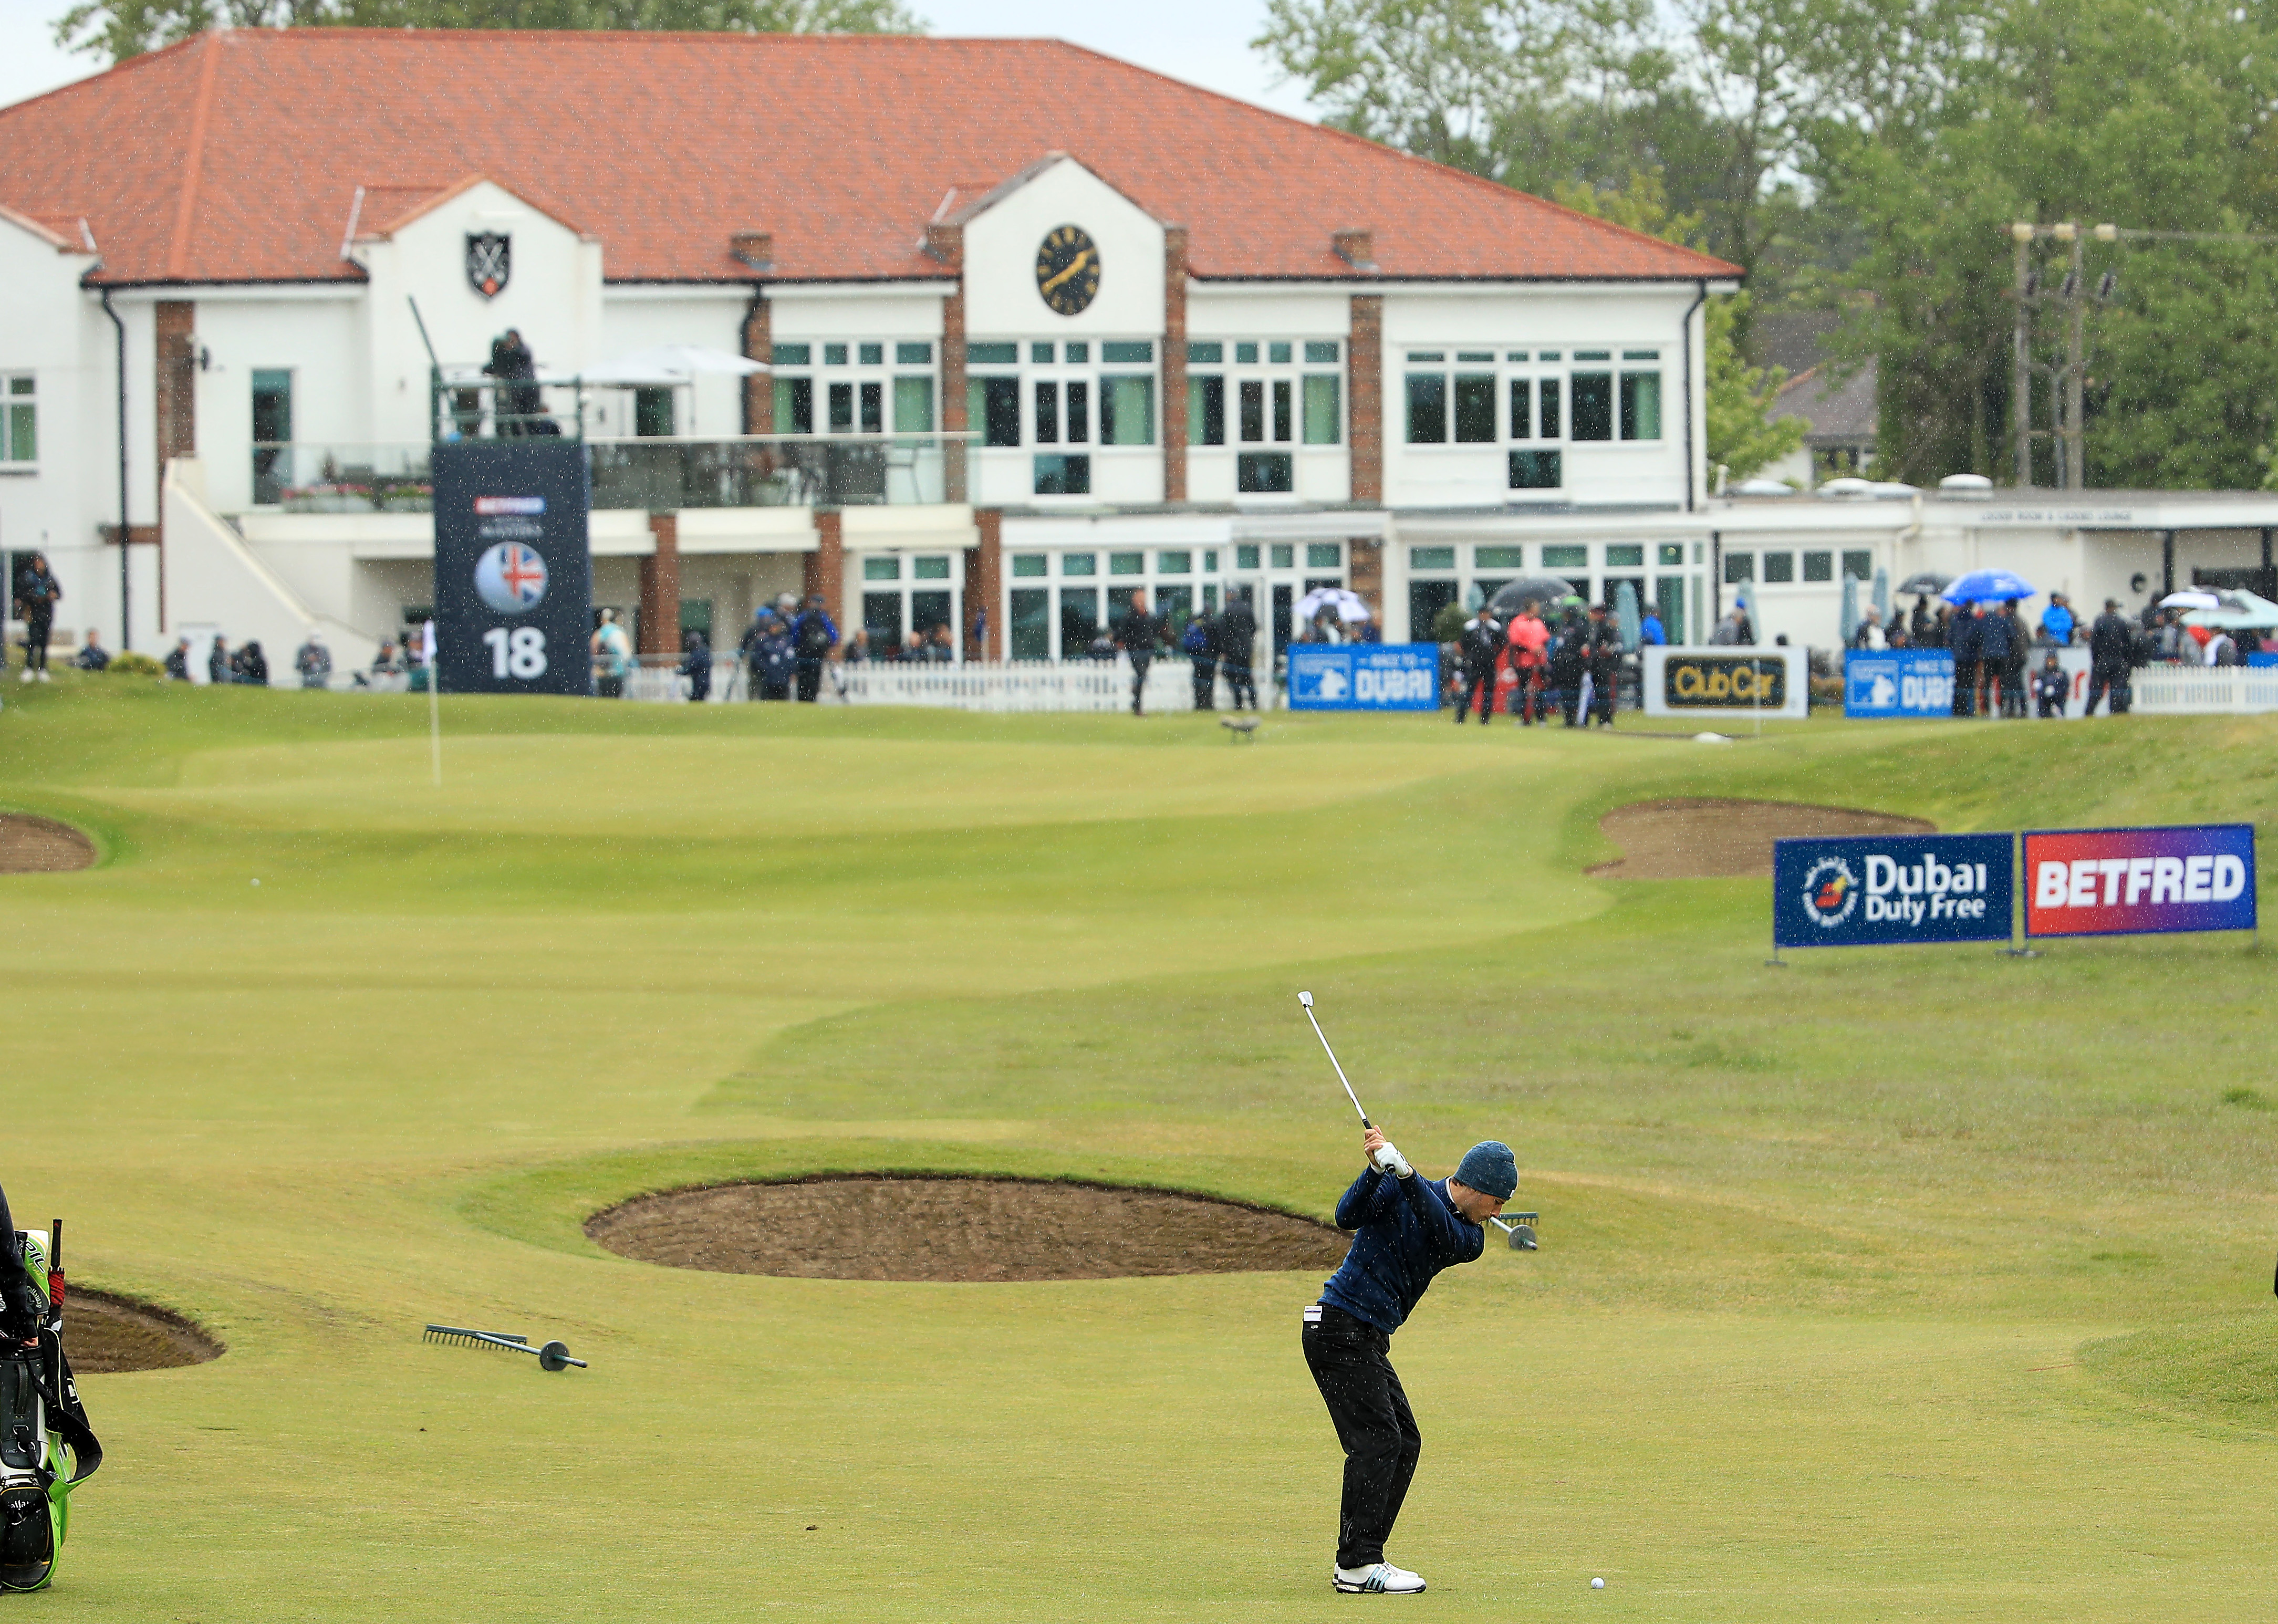 Matthew Jordan hits his approach to the 18th during Day One of the Betfred British Masters at Hillside.